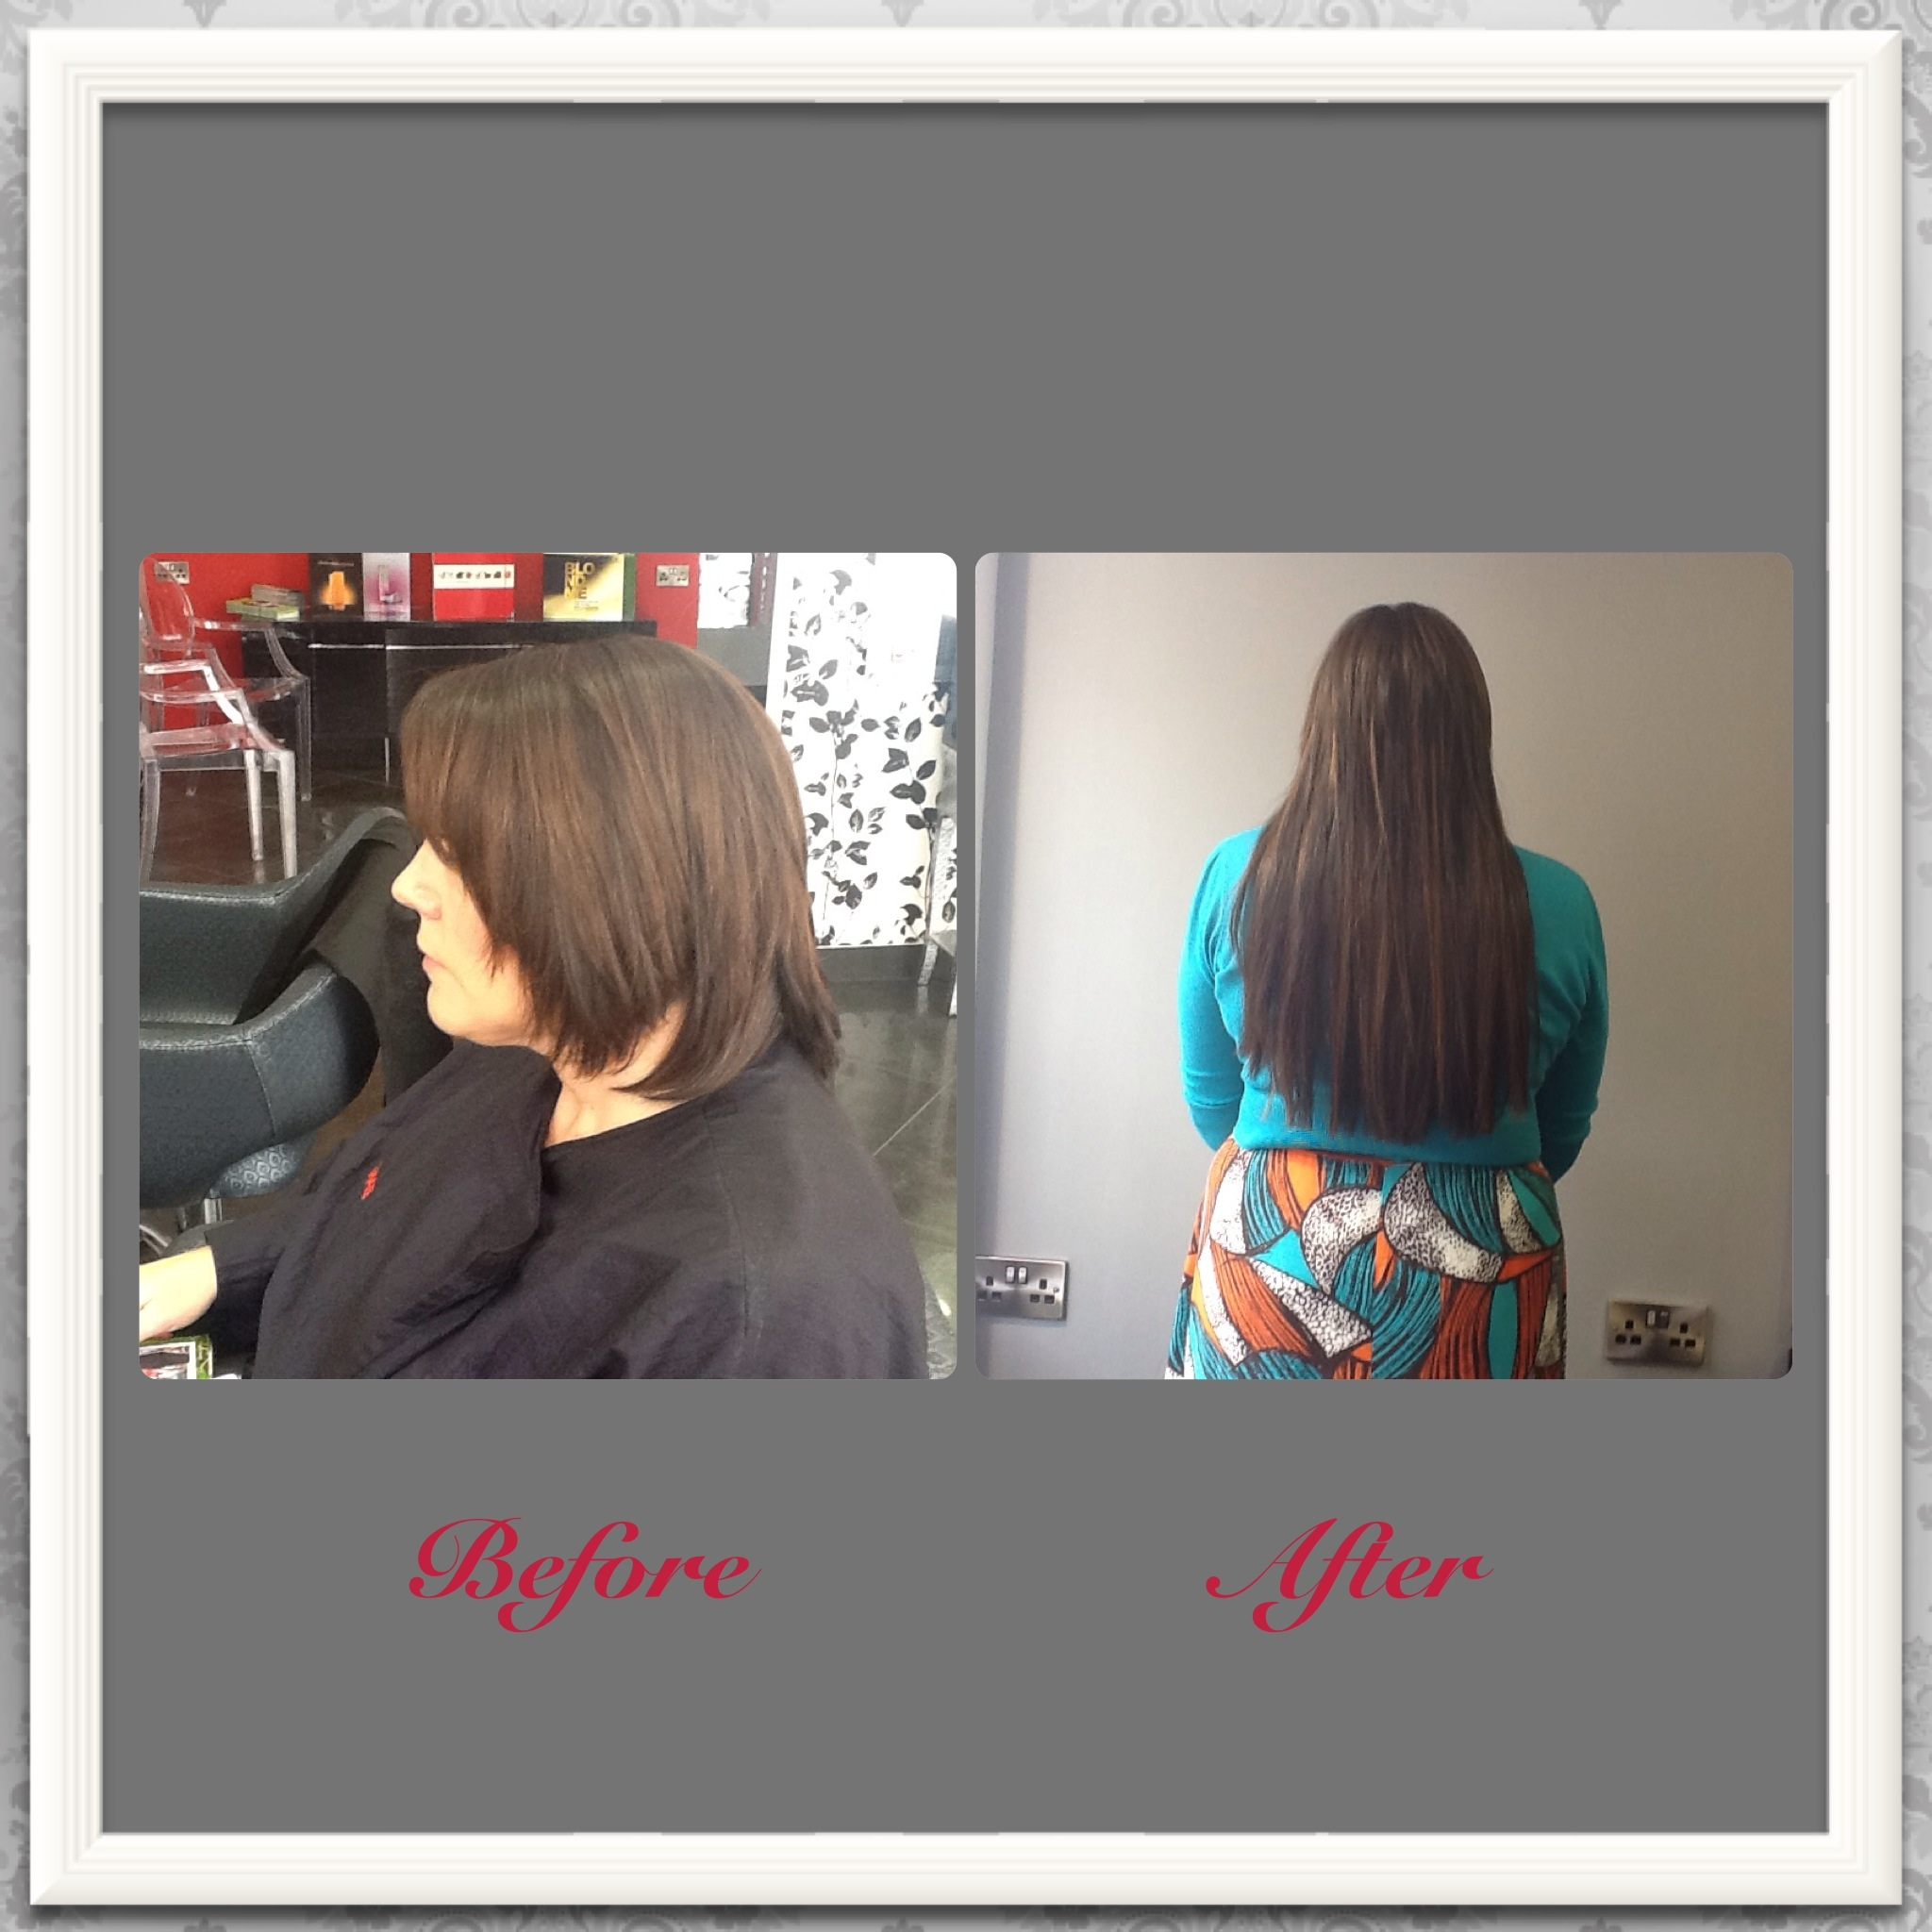 hair extensions by collette, Before & After Photos at Top Hair Salon in Farnham, Surrey